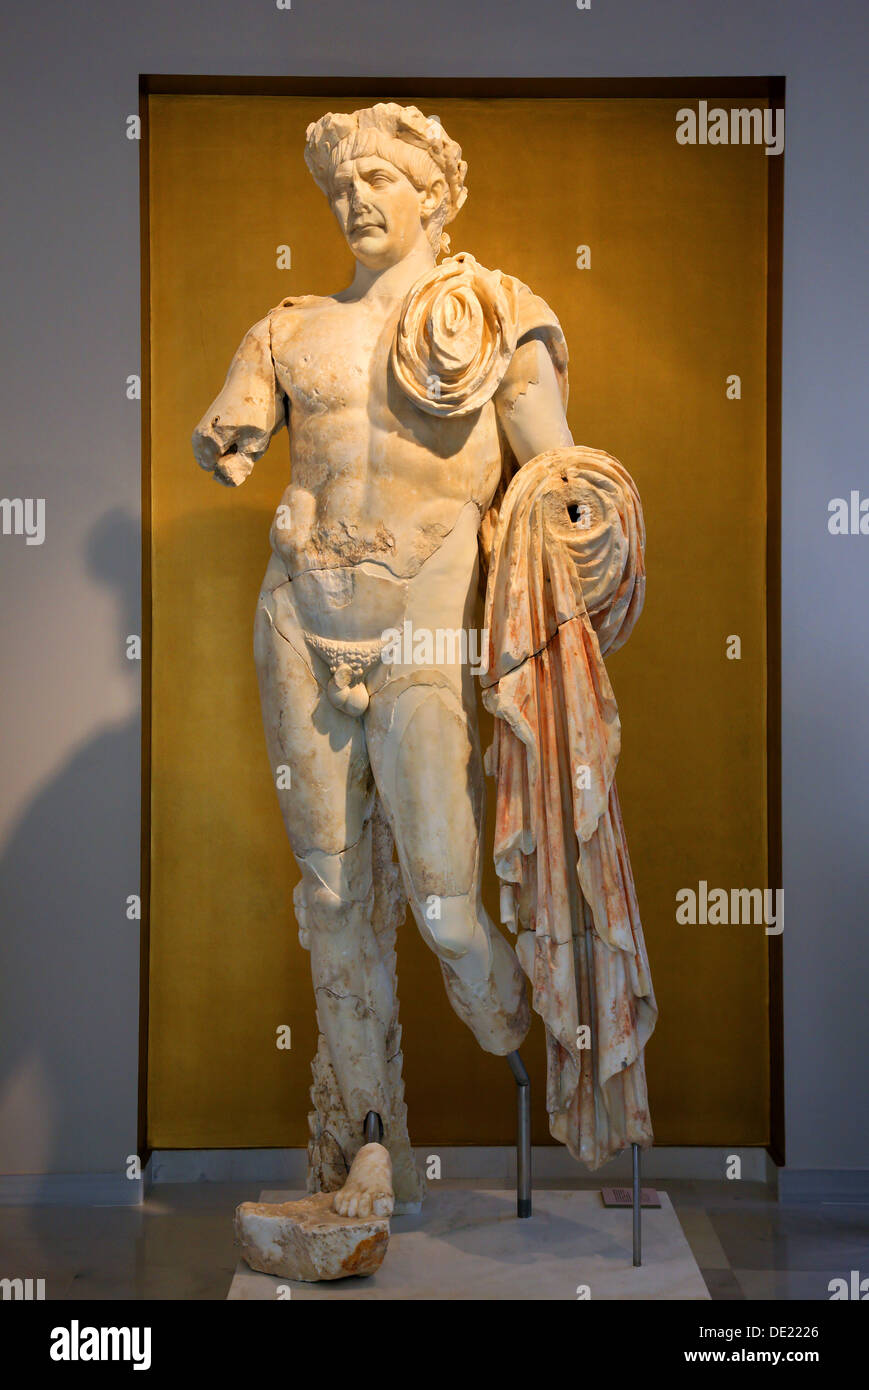 Statue of Roman emperor Trajan at the archaeological museum of Pythagorion, Samos island, Aegean Sea, Greece. Stock Photo